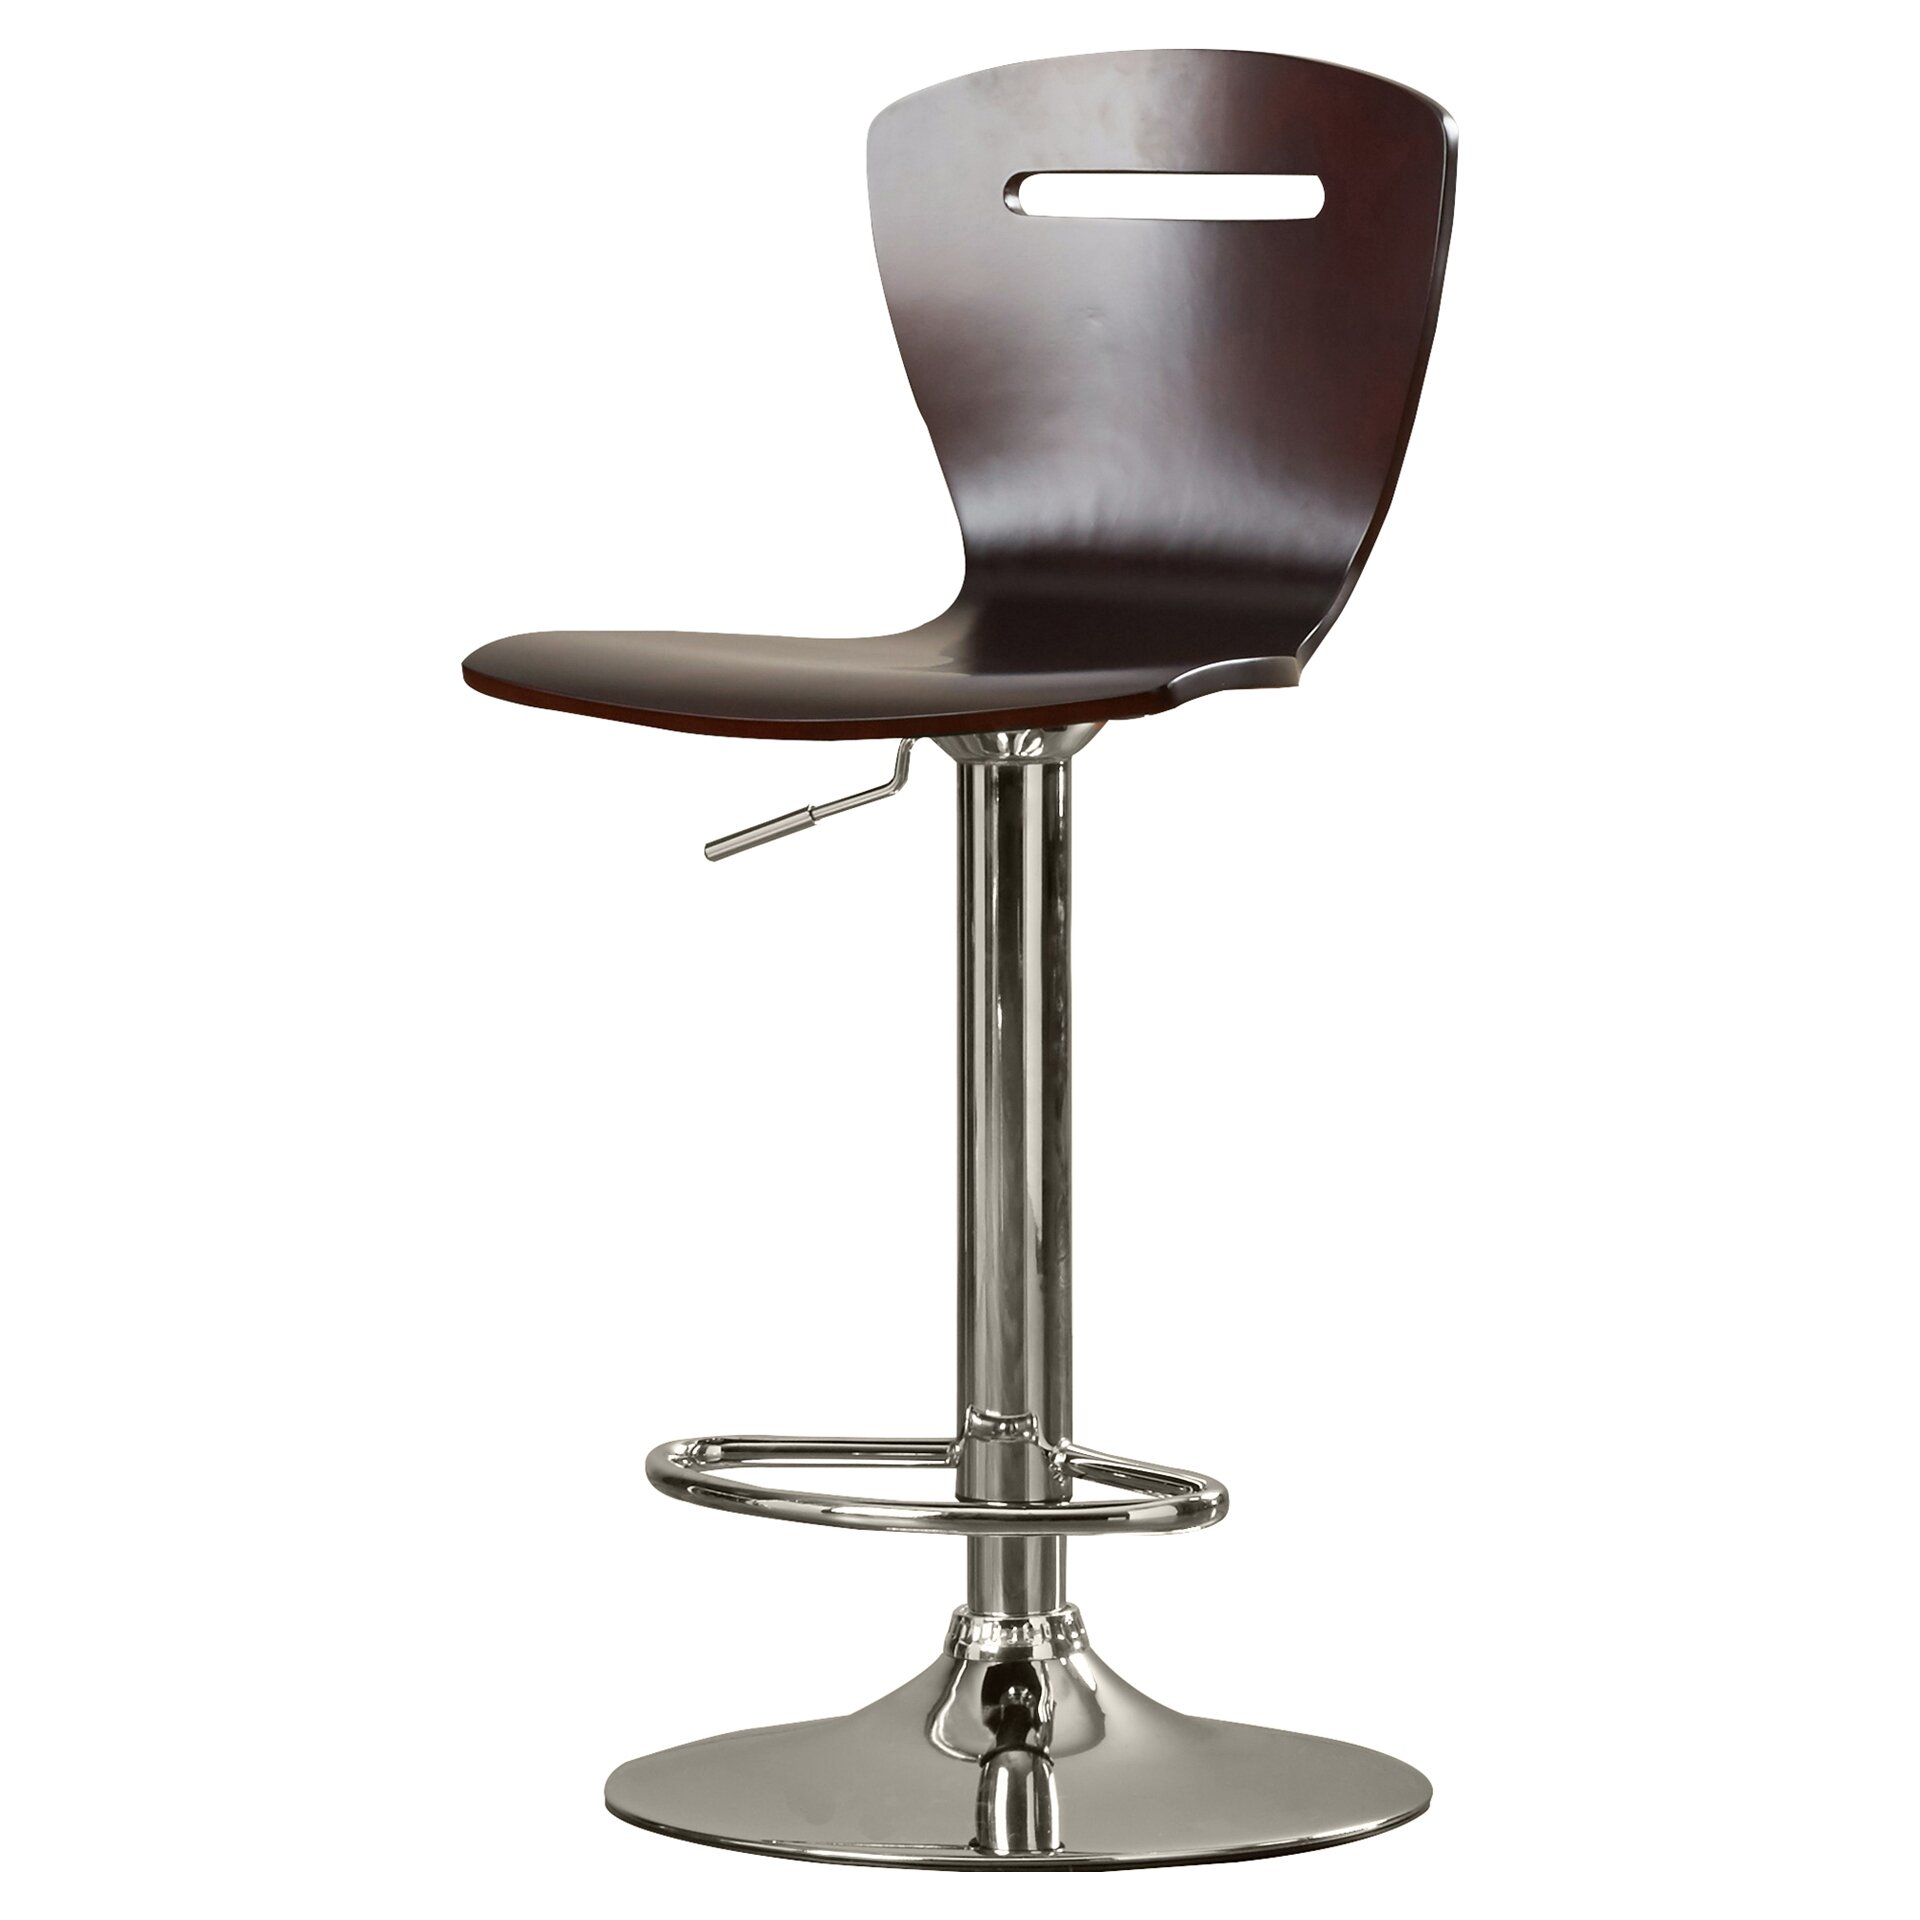 Zipcode design sloane adjustable height swivel bar stool for Counter height swivel bar stools